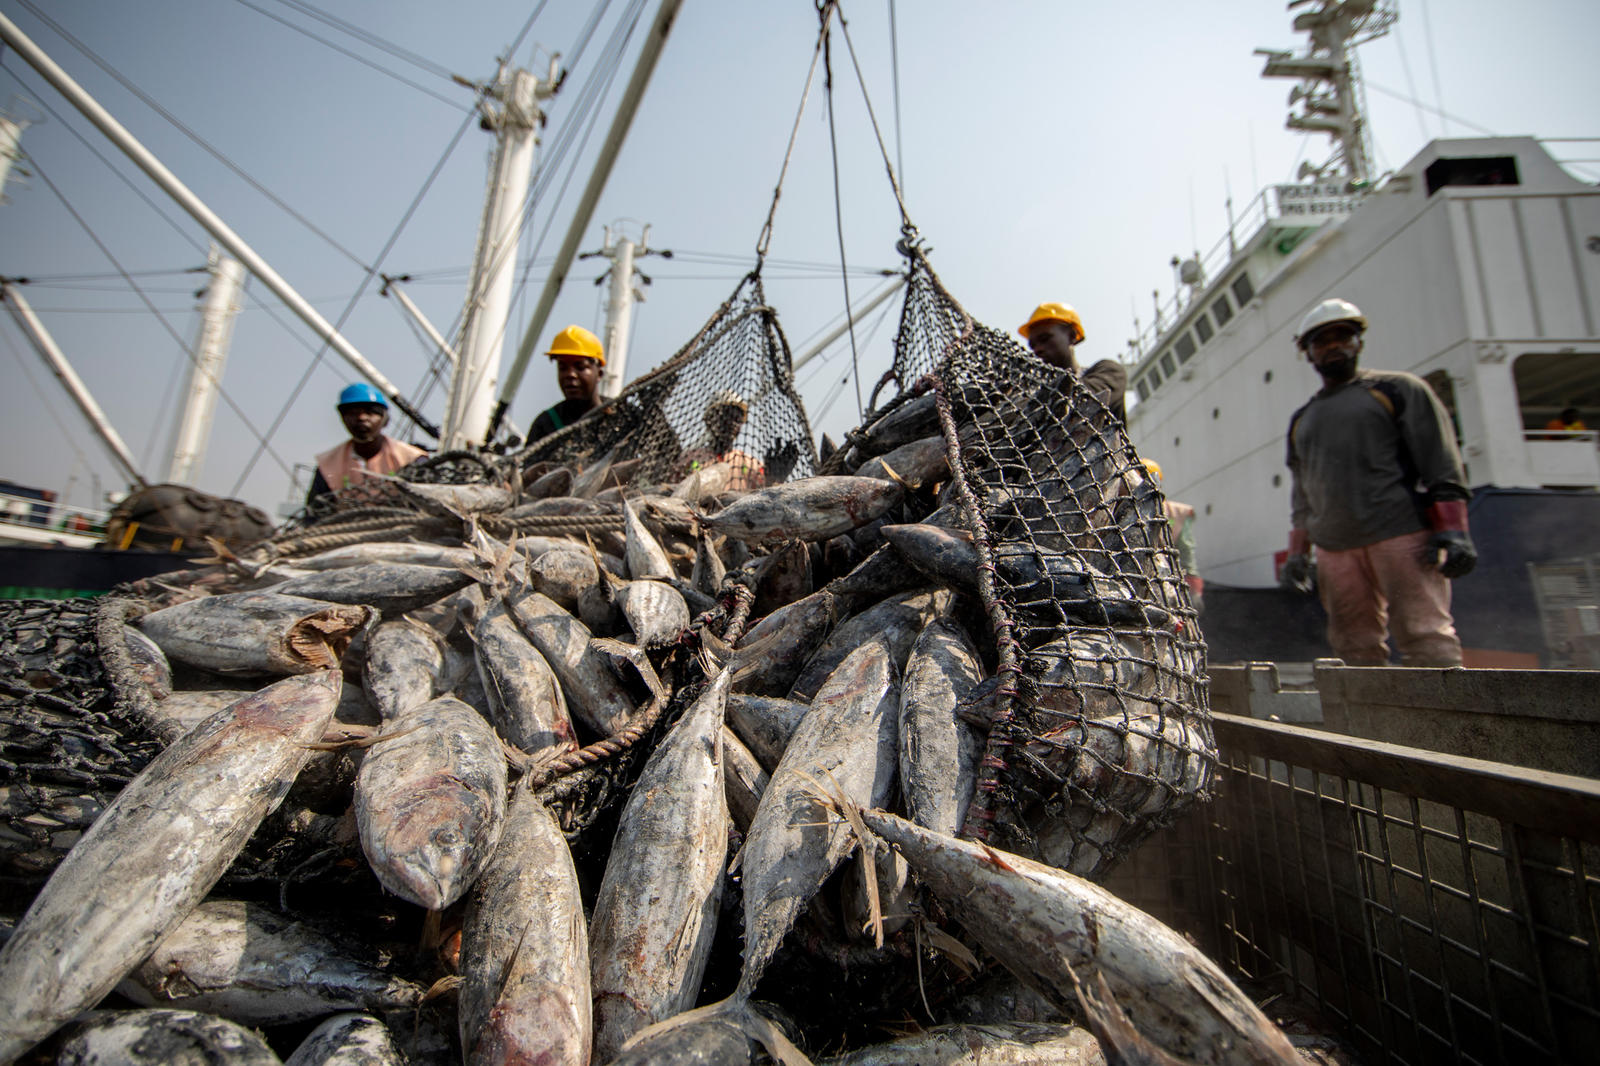 Workers sorting tuna